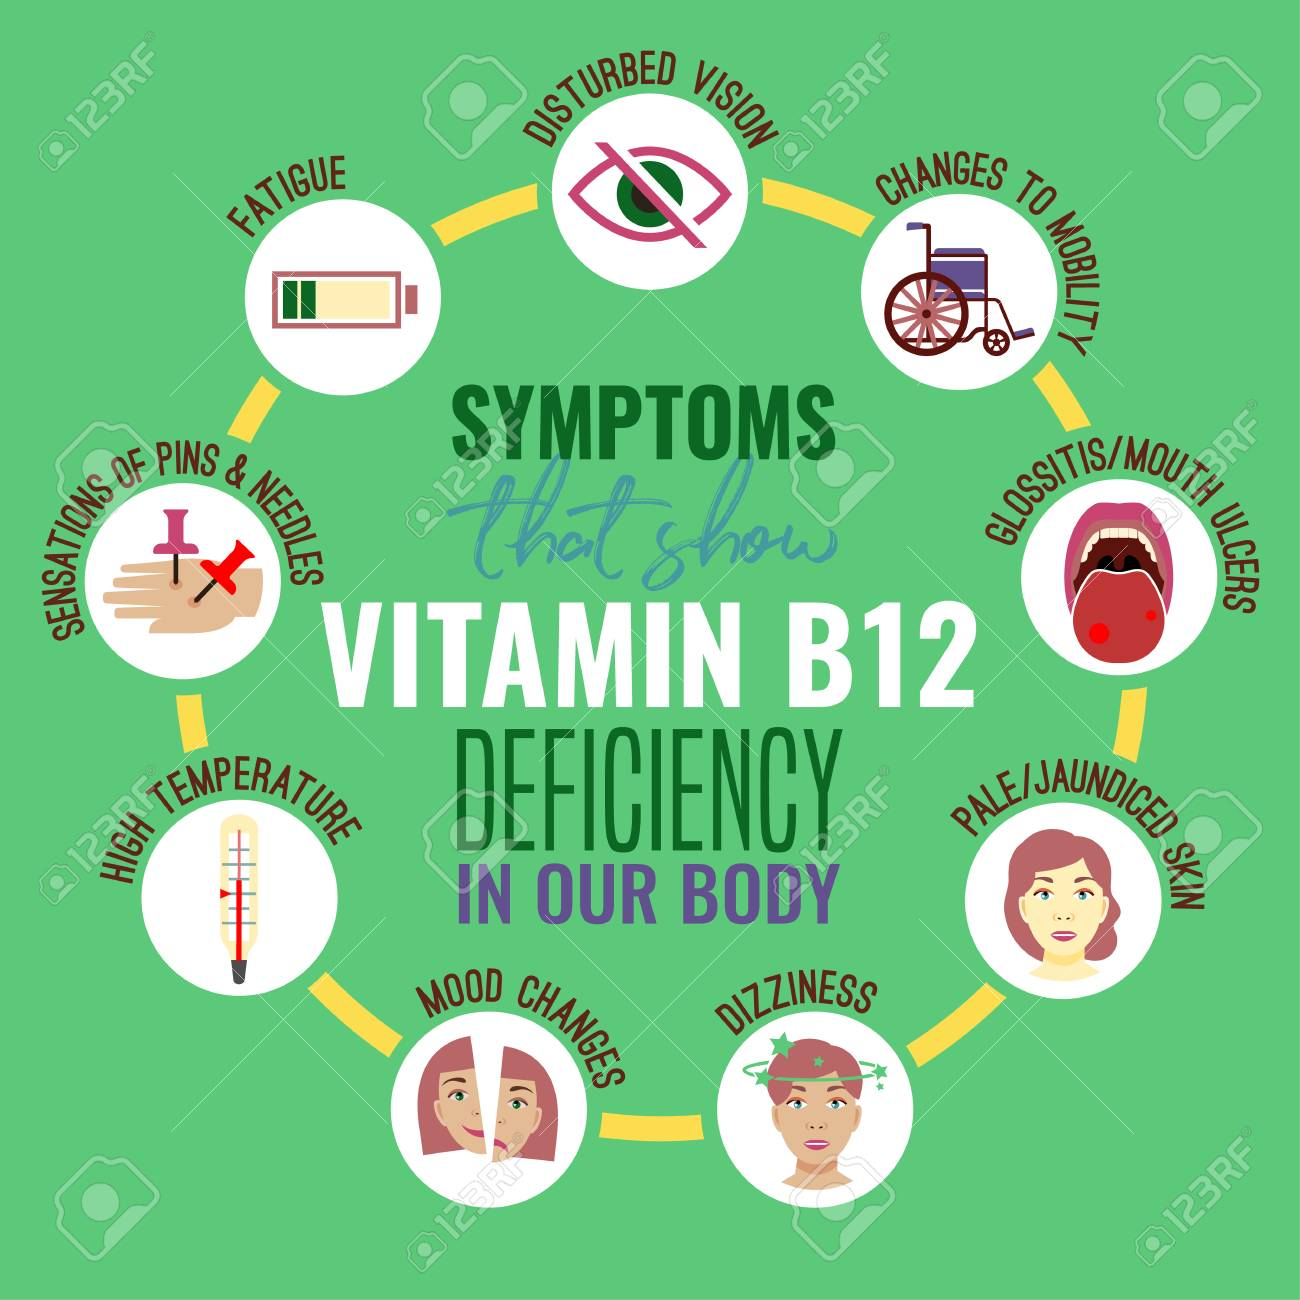 Vitamin B12 deficiency signs and symptoms. Medical icons. Vector illustration in bright colours isolated on a green background. Beauty, health care and eutrophy concept. - 110458105